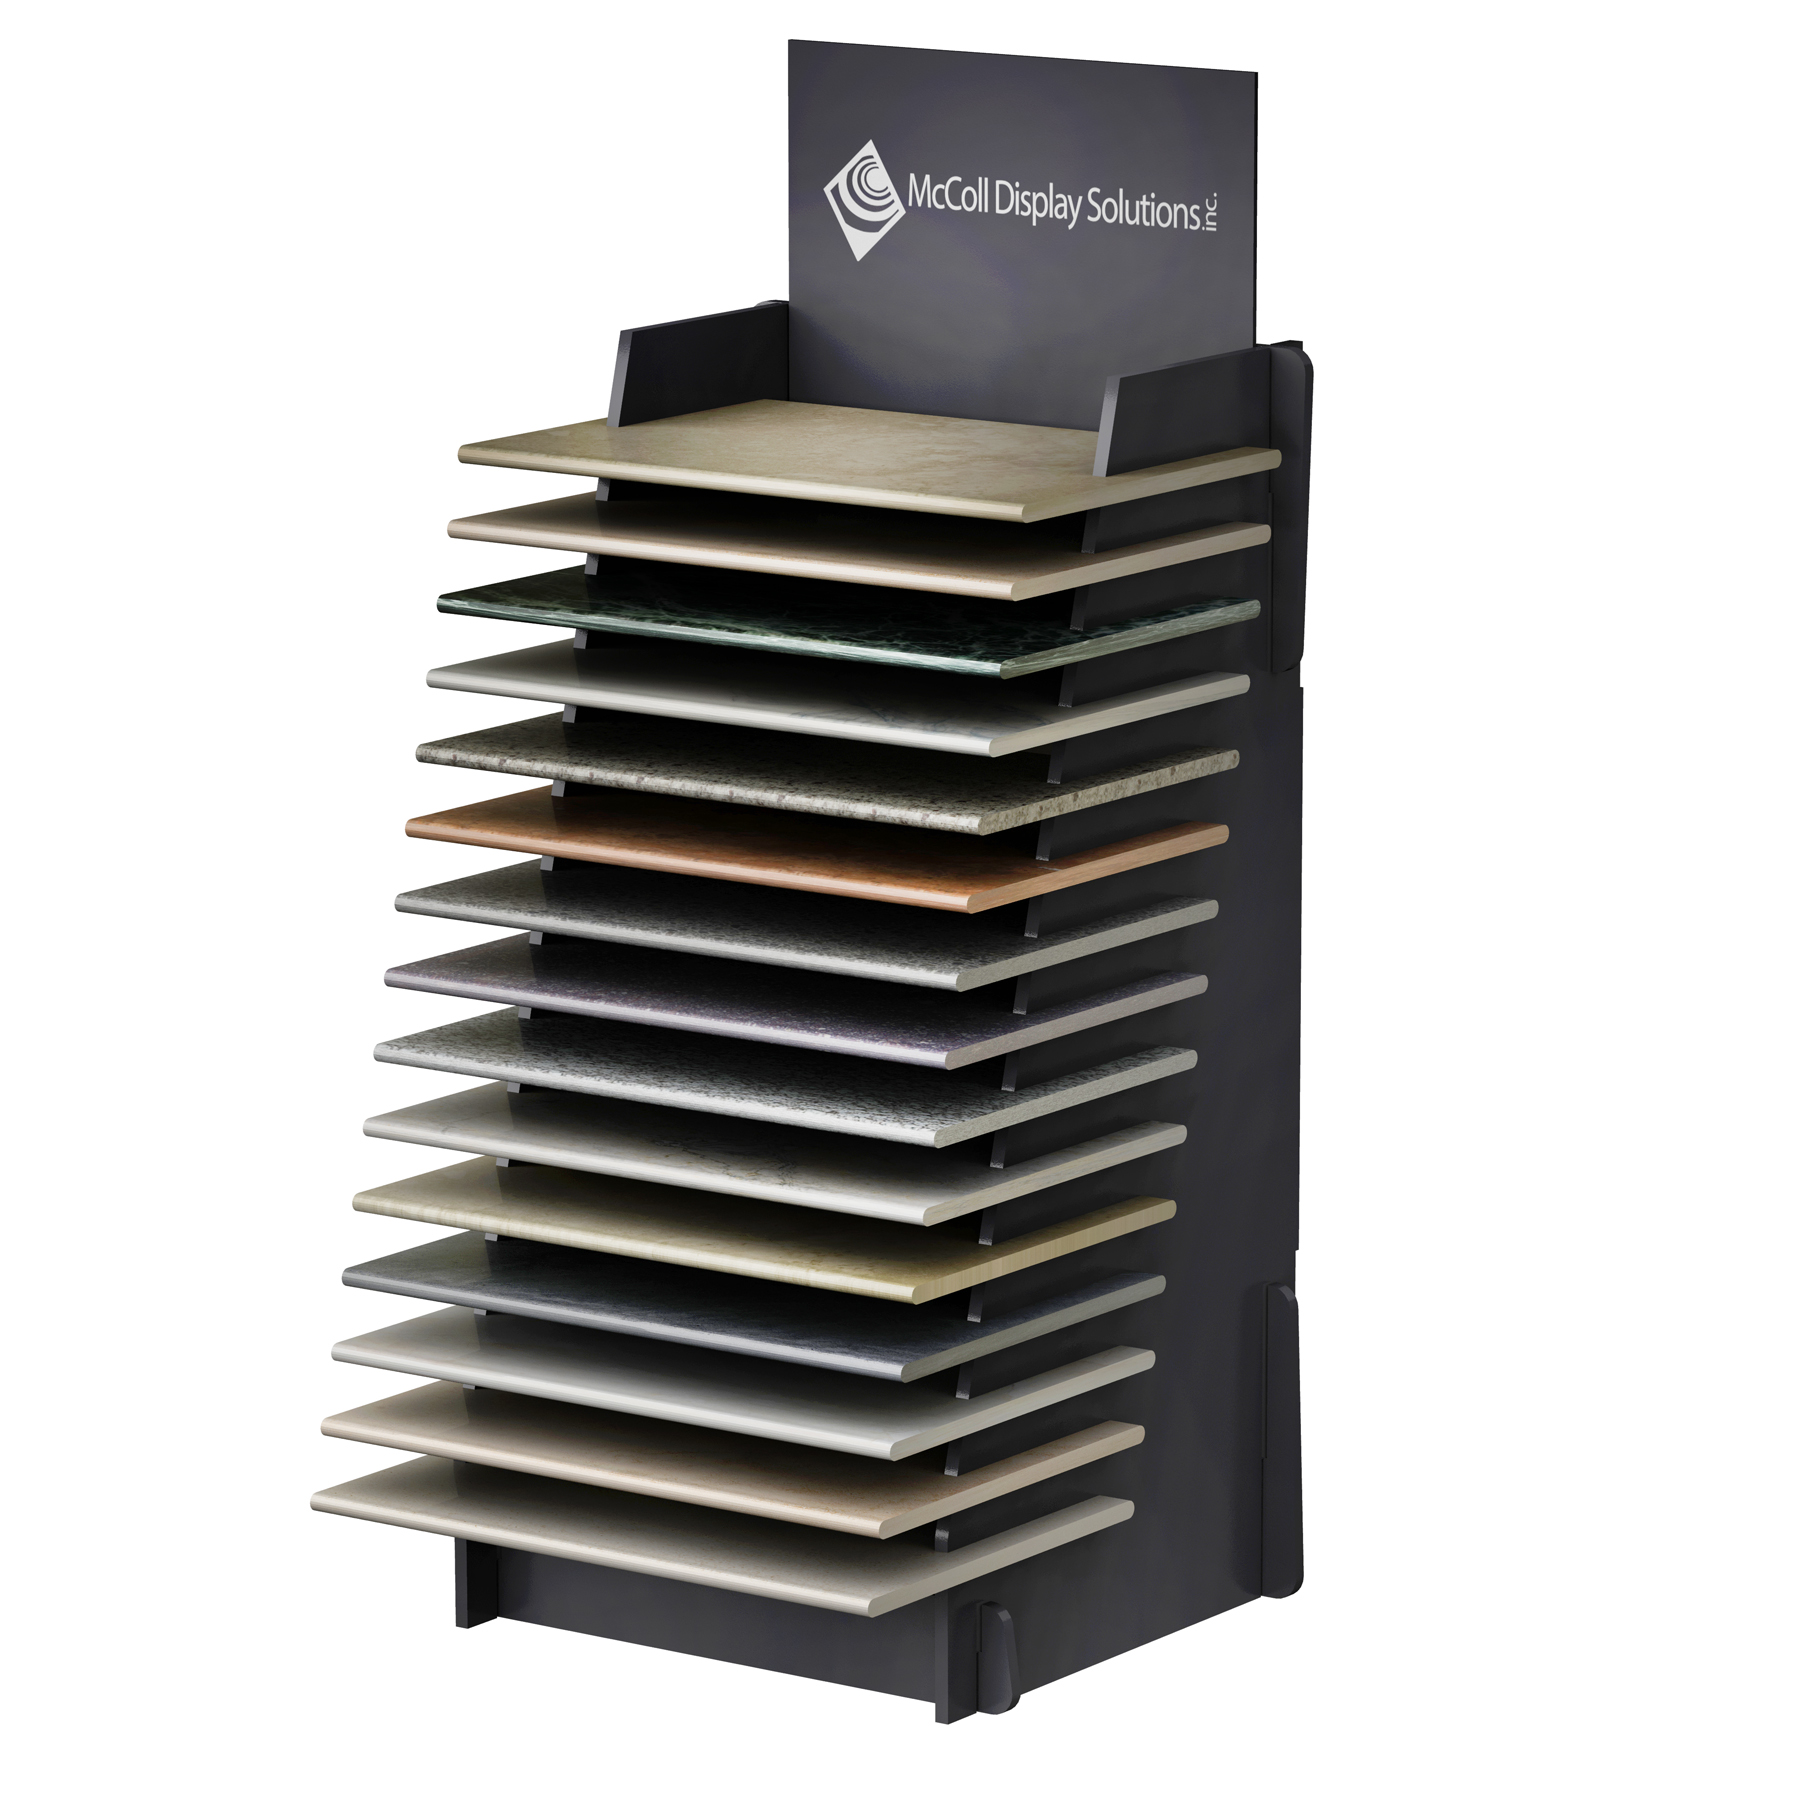 ST99 Pool Coping Tower Shelf Display System Also Holds Hardwood Plank Ceramic Tile Granite Marble Flooring Economical Price